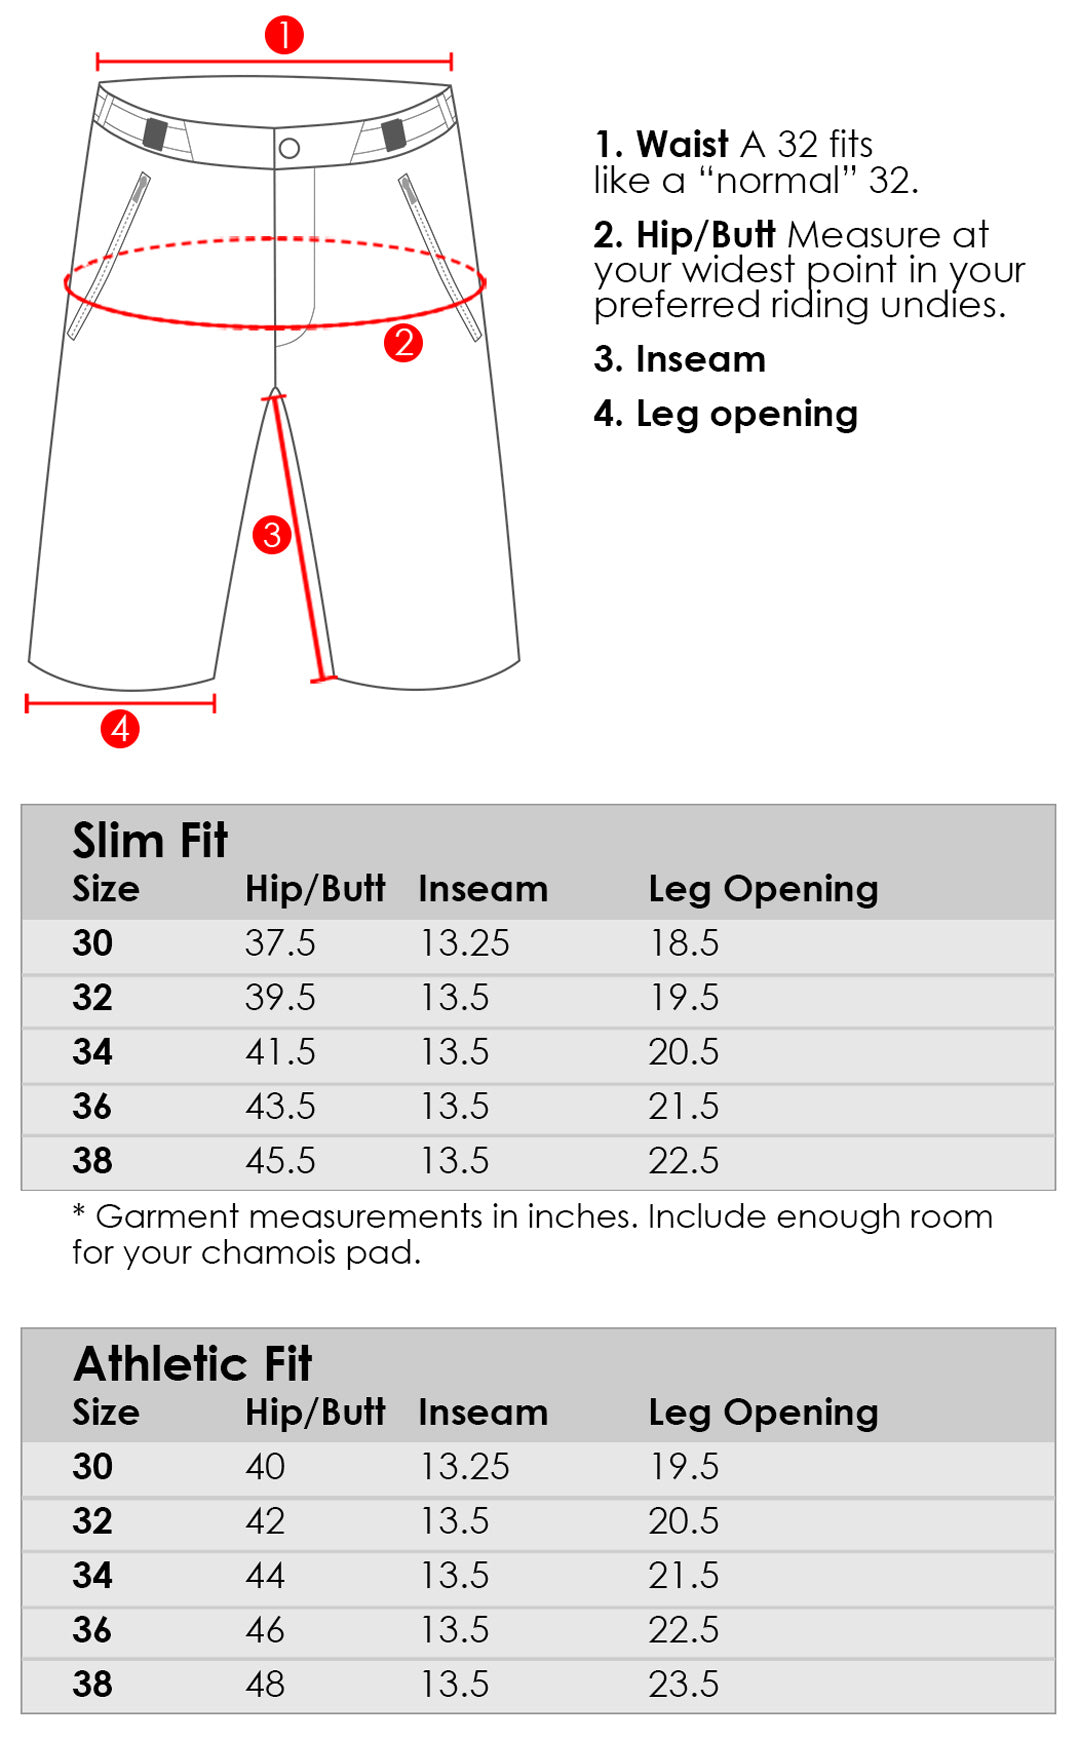 Abit Gear men's enduro MTB short size guide